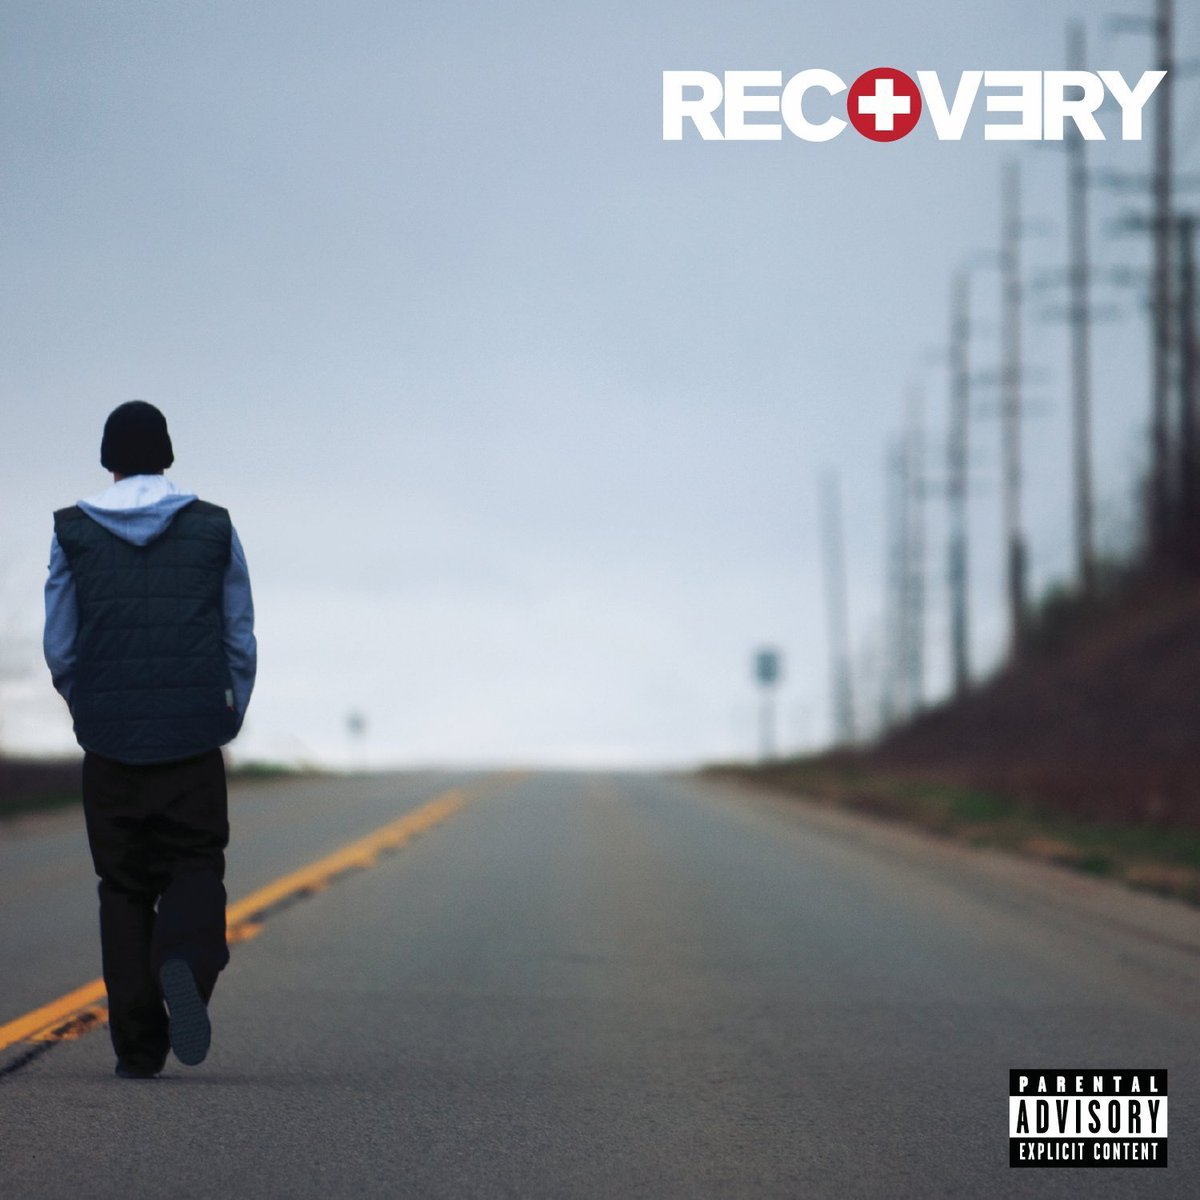 2Moro June 18 we celebrate #Recovery on its release date - Grammy winning/Multi-Platinum album by the Boss @Eminem https://t.co/5Dzwtq6ZVS